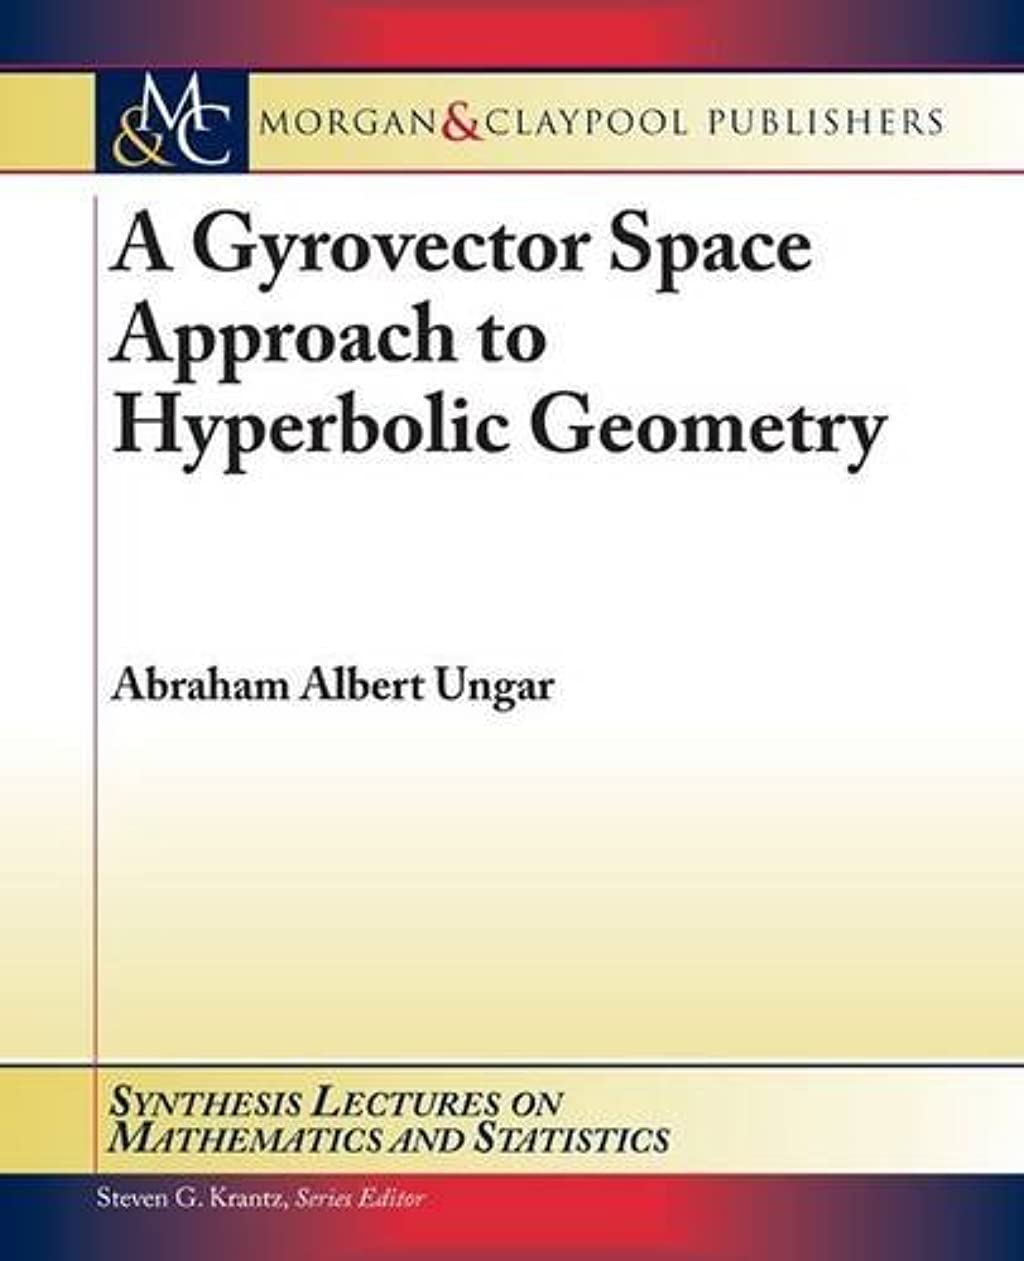 嵐ディベート軽減するA Gyrovector Space Approach to Hyperbolic Geometry (Synthesis Lectures on Mathematics and Statistics)